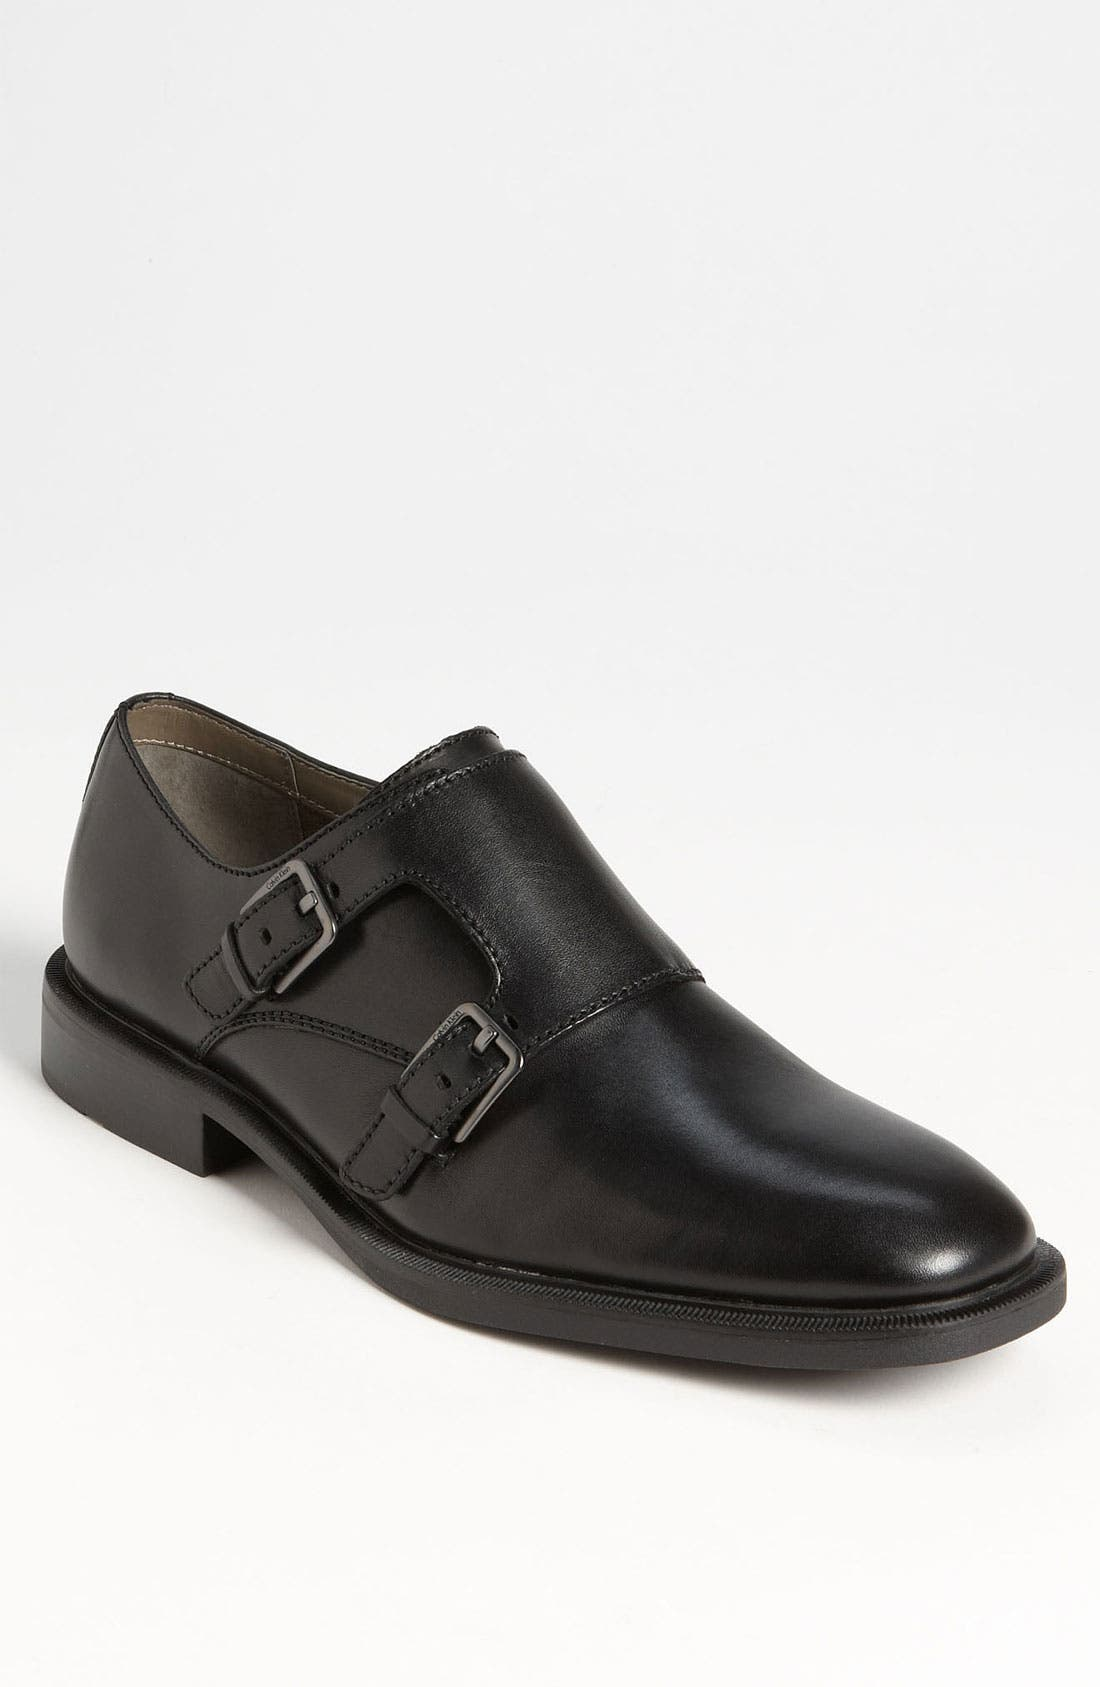 Main Image - Calvin Klein 'Russel' Double Monk Strap Slip-On